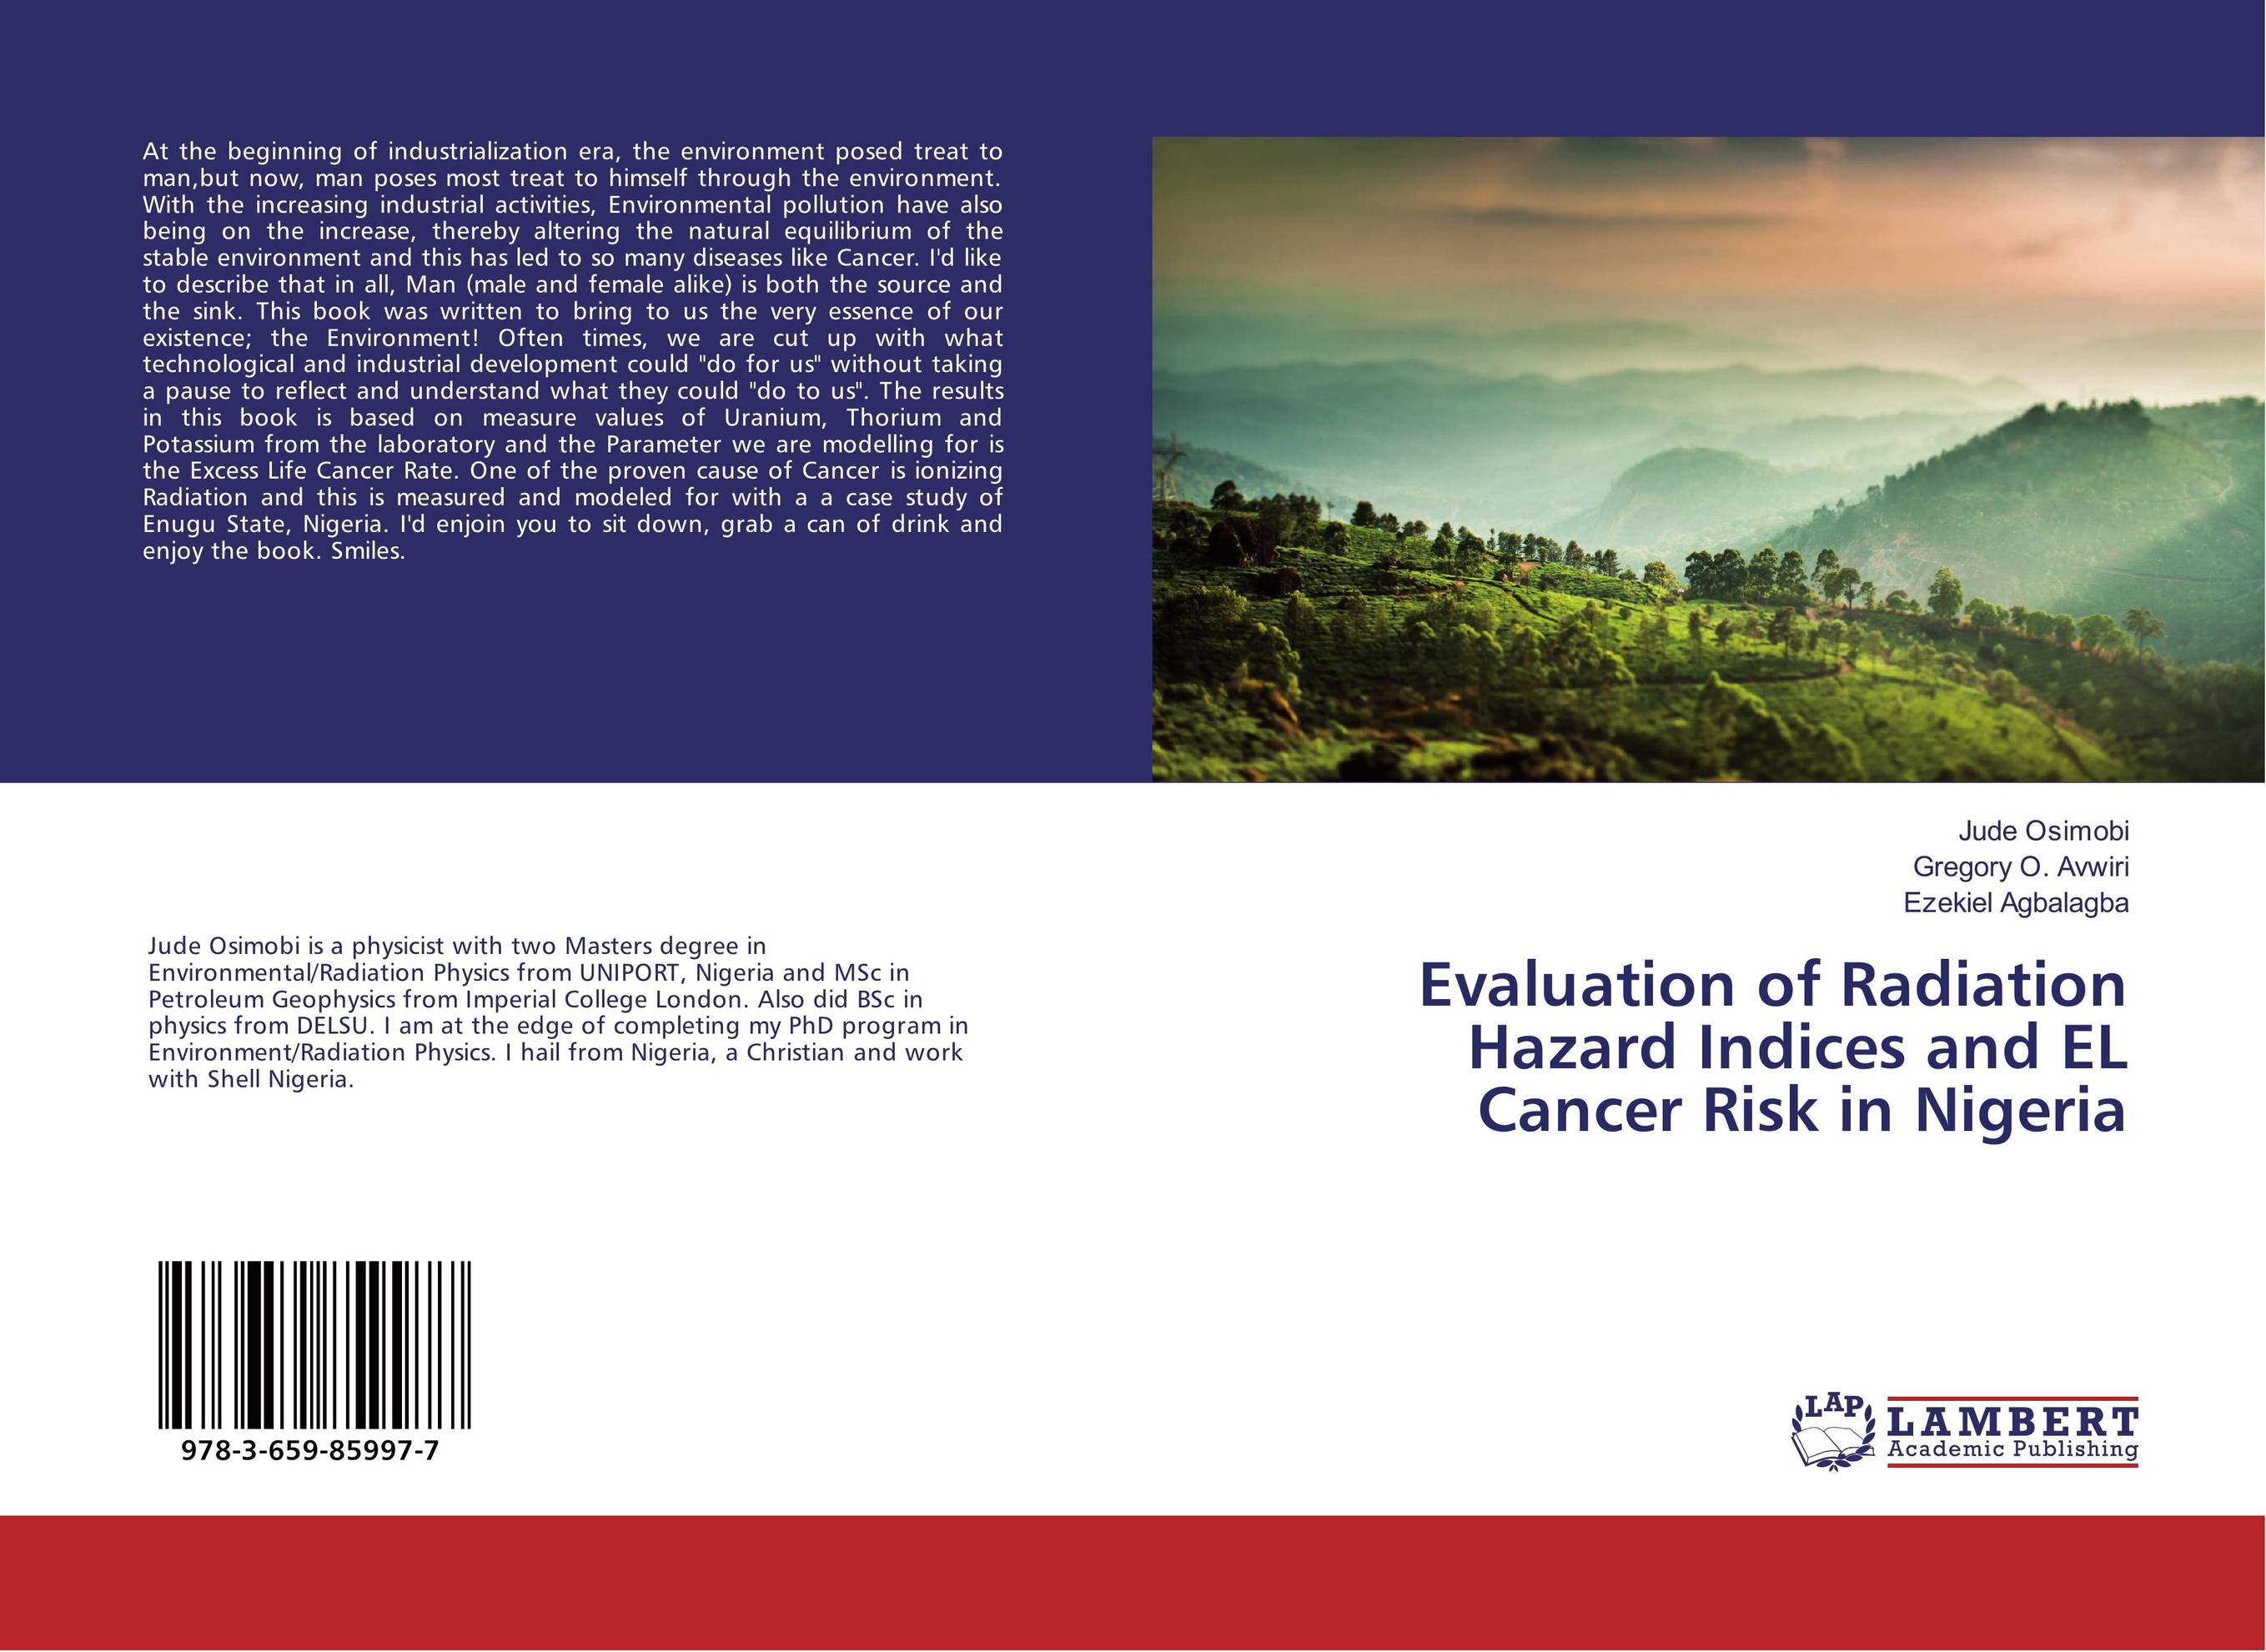 Evaluation of Radiation Hazard Indices and EL Cancer Risk in Nigeria viruses cell transformation and cancer 5